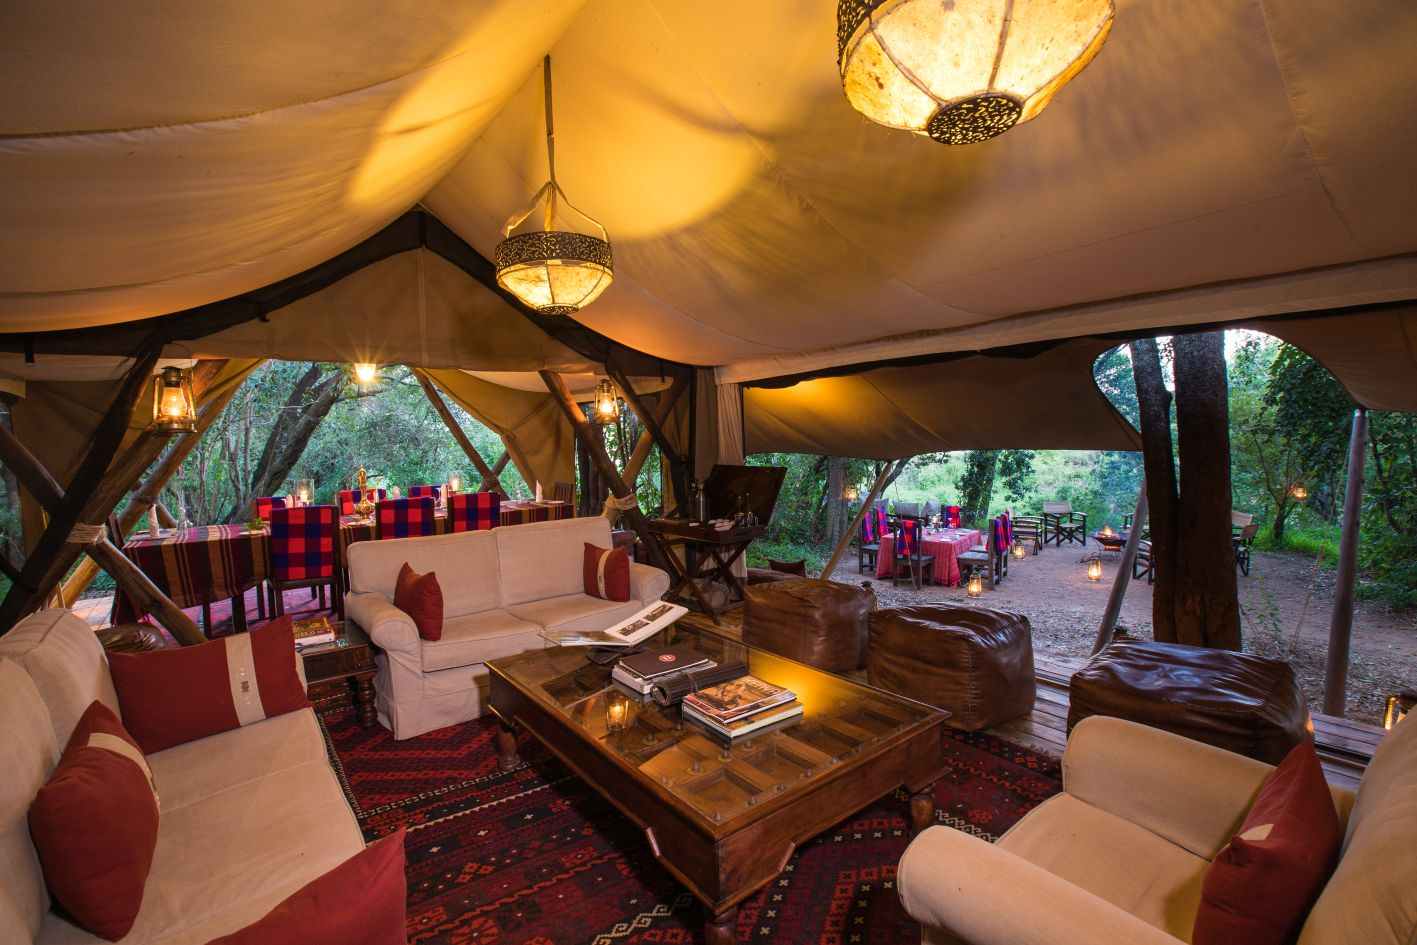 Great Plains will welcome Mara Toto and Mara plains, two stunning new safari camps in Kenya this summer.